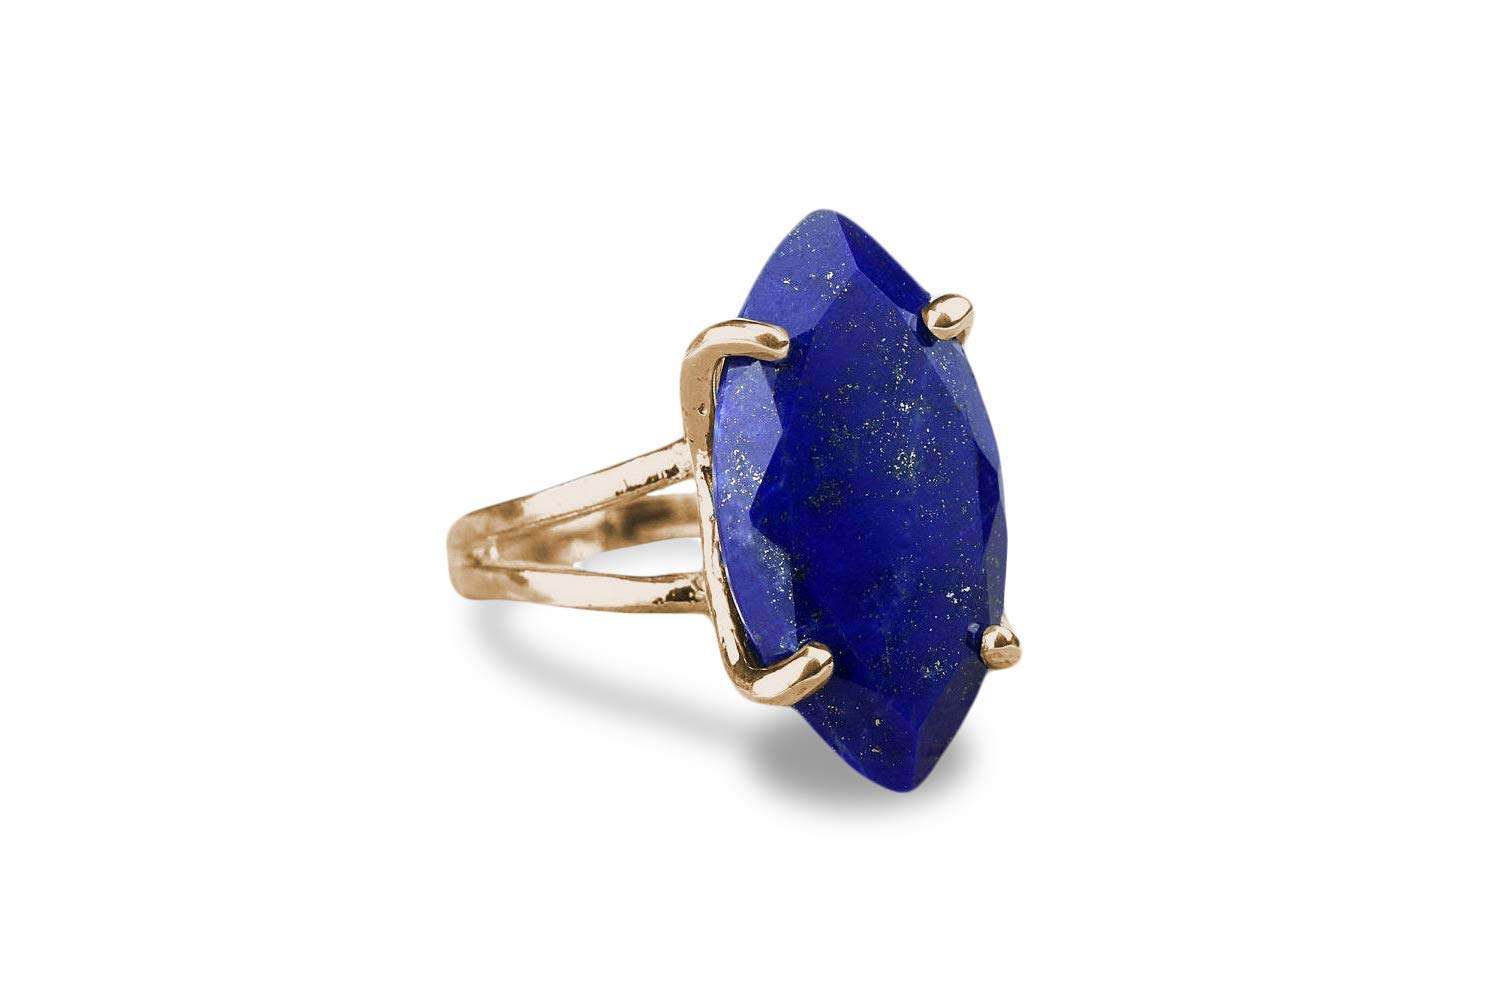 Anemone Jewelry Birthstone Rings for Women Lapis Lazuli Ring in 925 Sterling Silver Blue Rings for Women for Celebrations and Everyday Wear with Gift Box